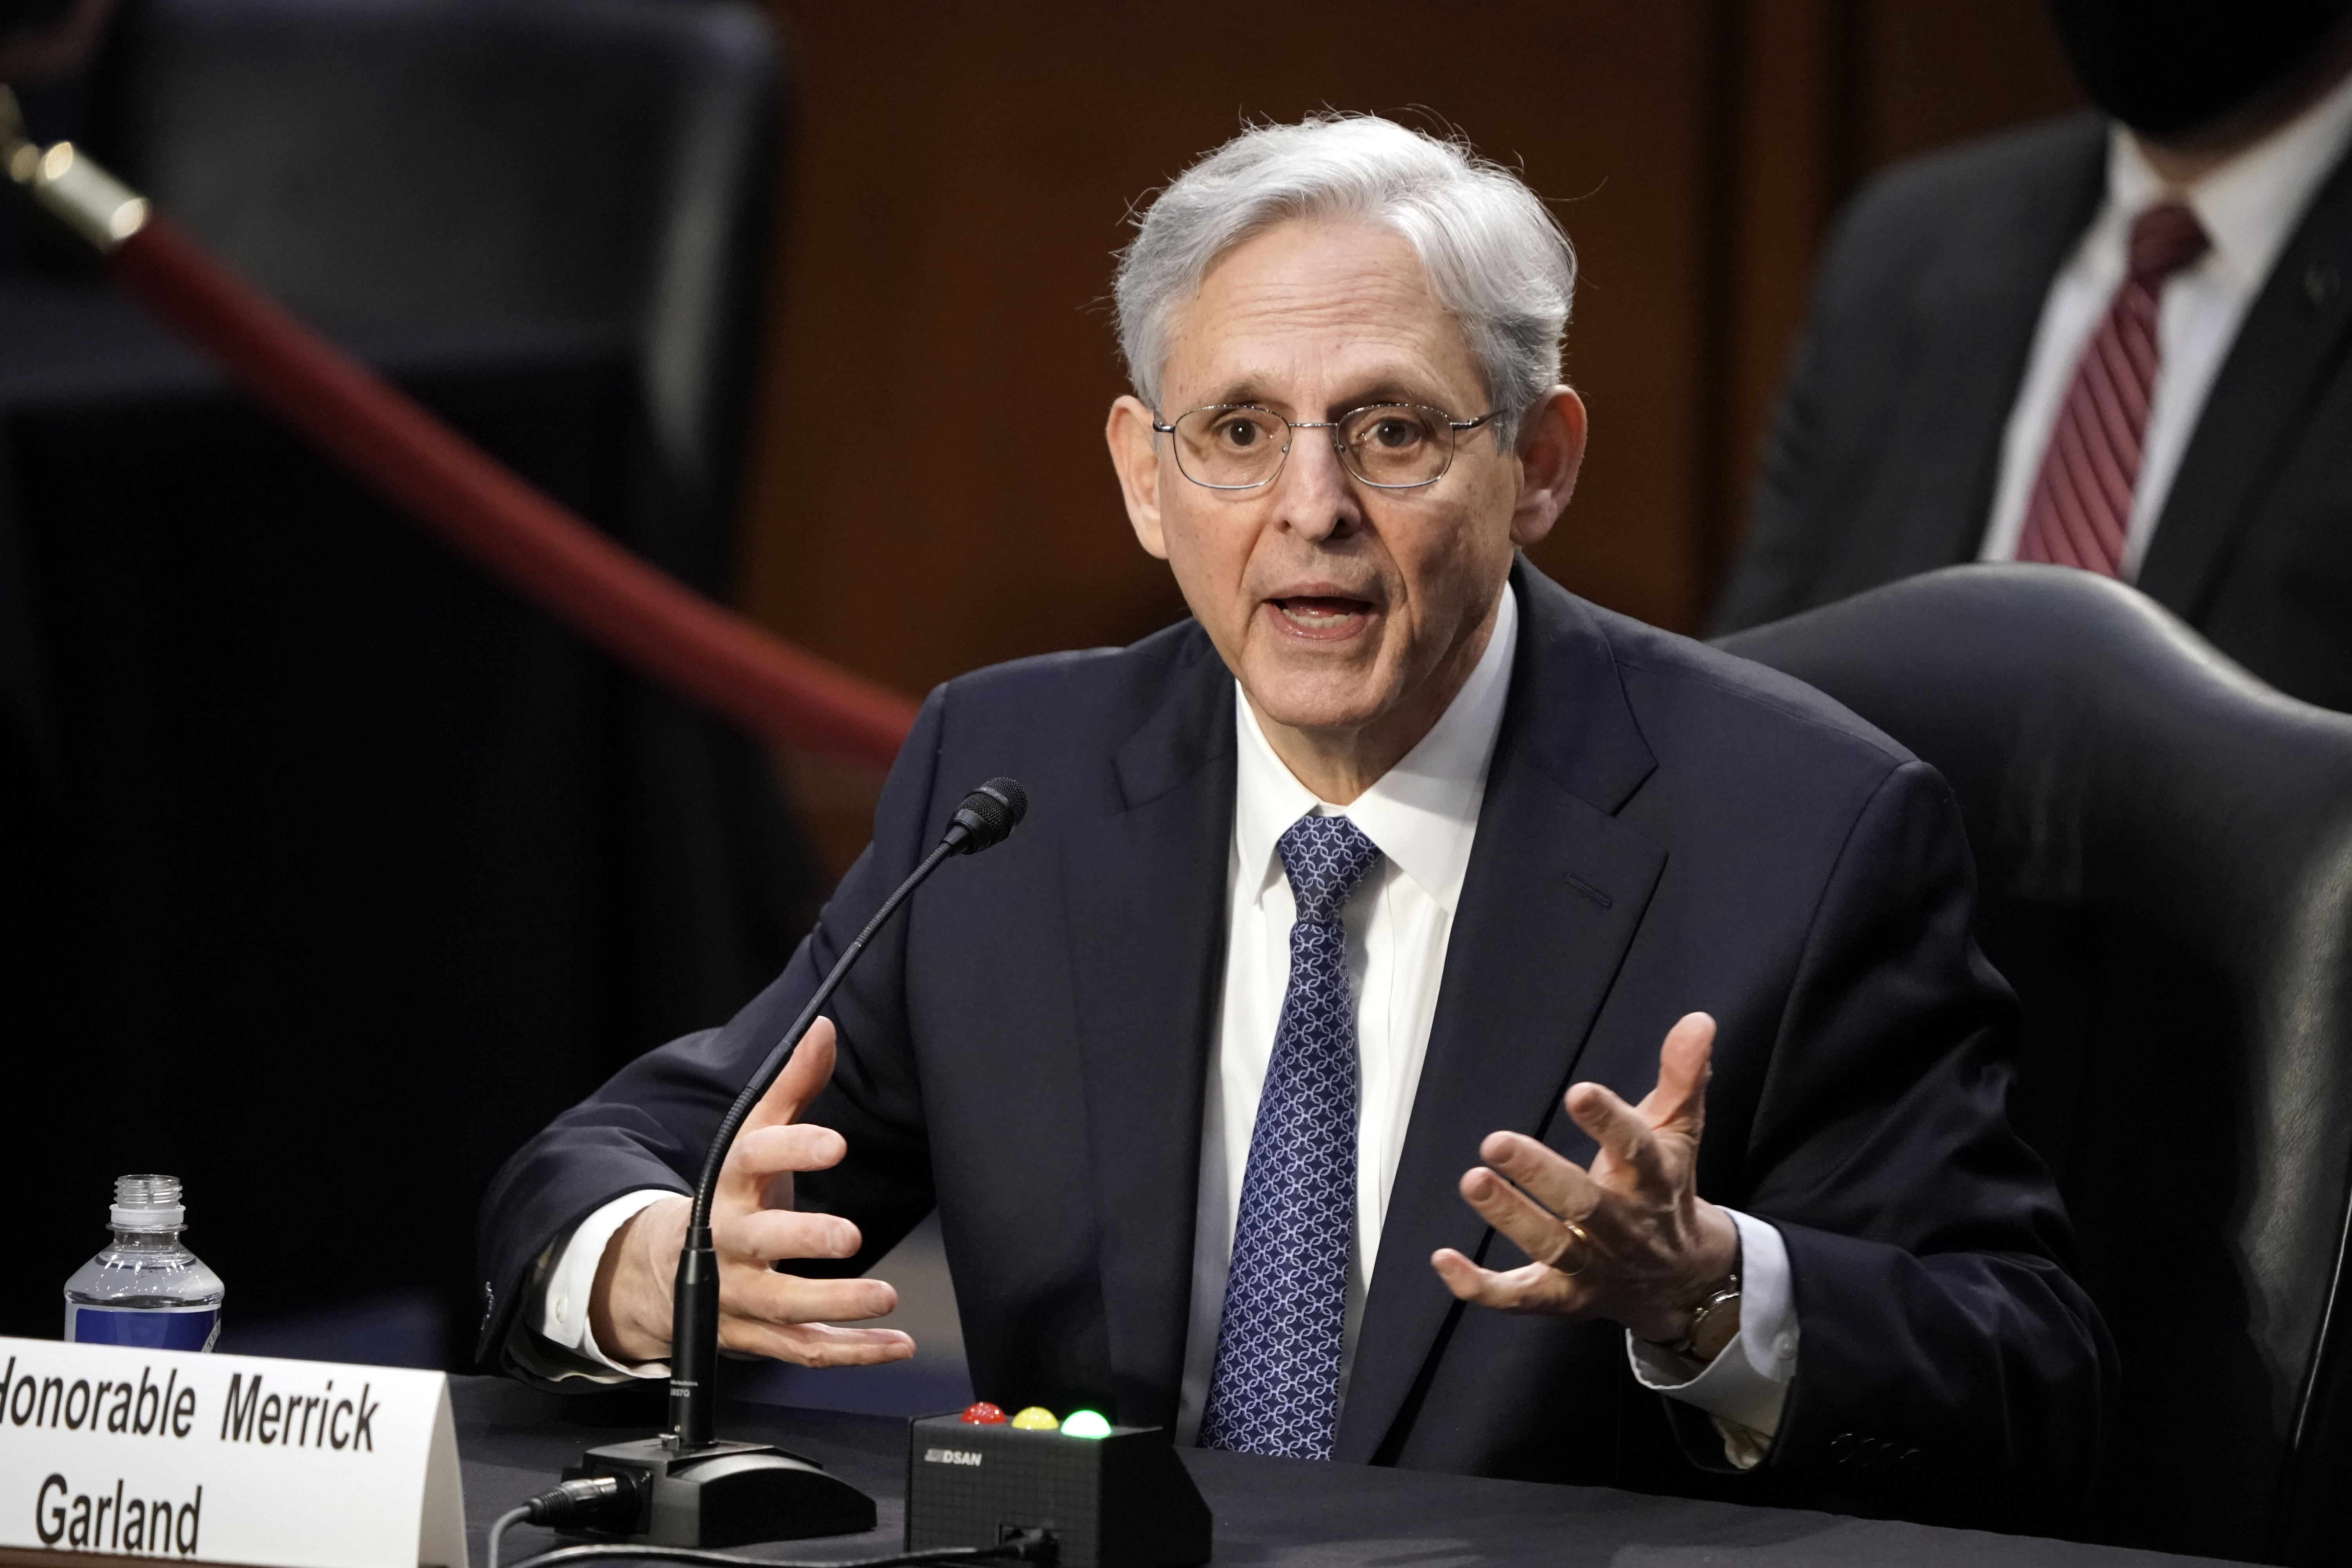 """A man wearing a suit sits behind a table and speaks into a microphone. A sign on the desk reads """"Honorable Merrick Garland"""""""